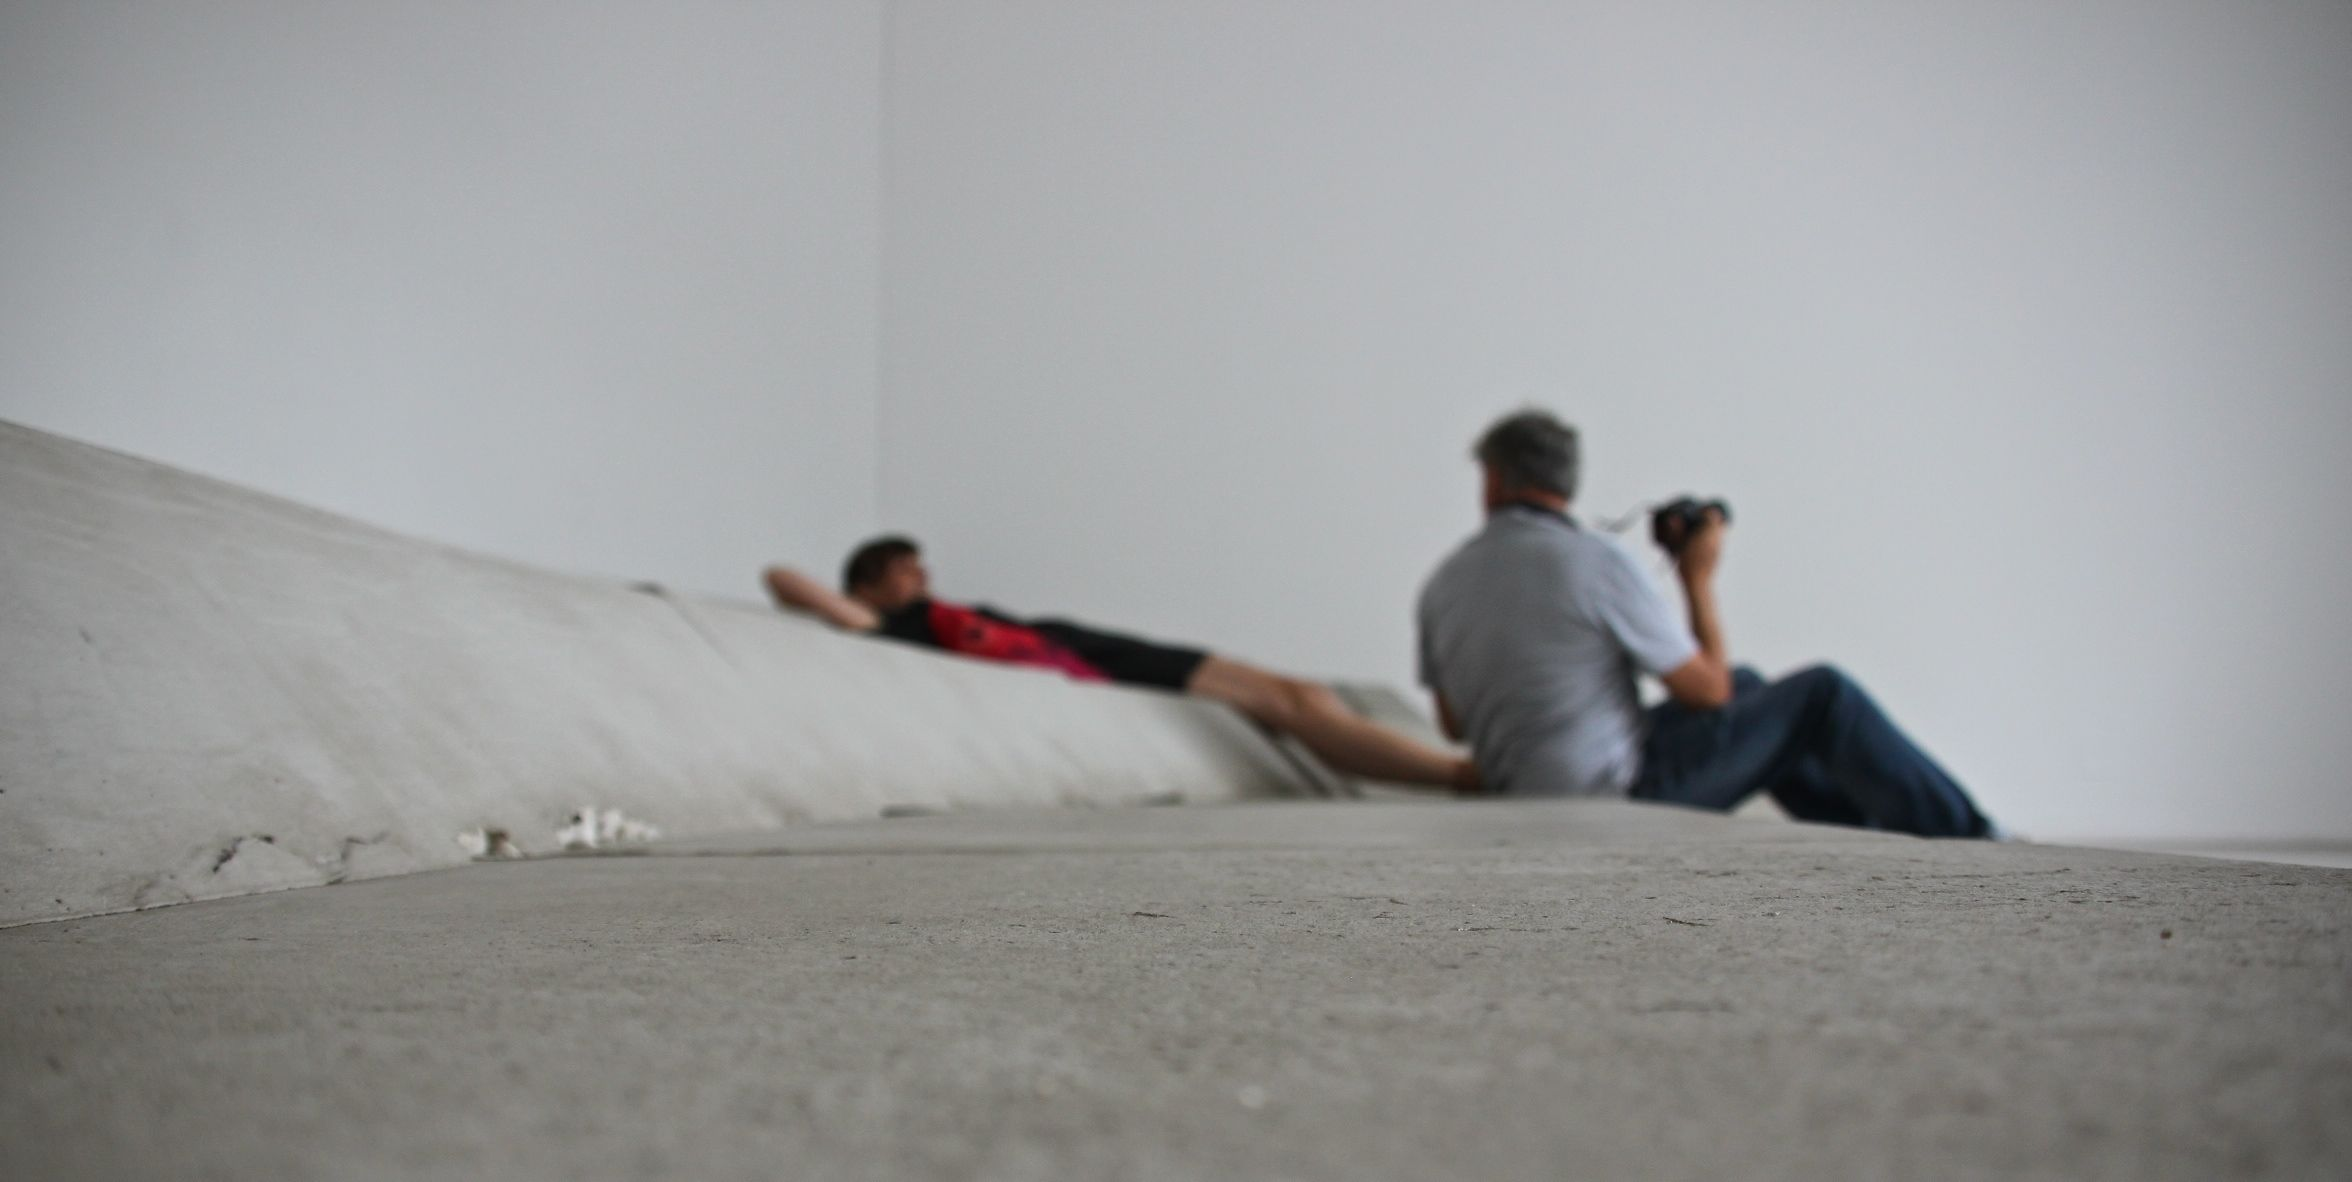 After a long hot afternoon browsing Venice Biennale's modern art its great to have a soothing lie down in the French pavilion!